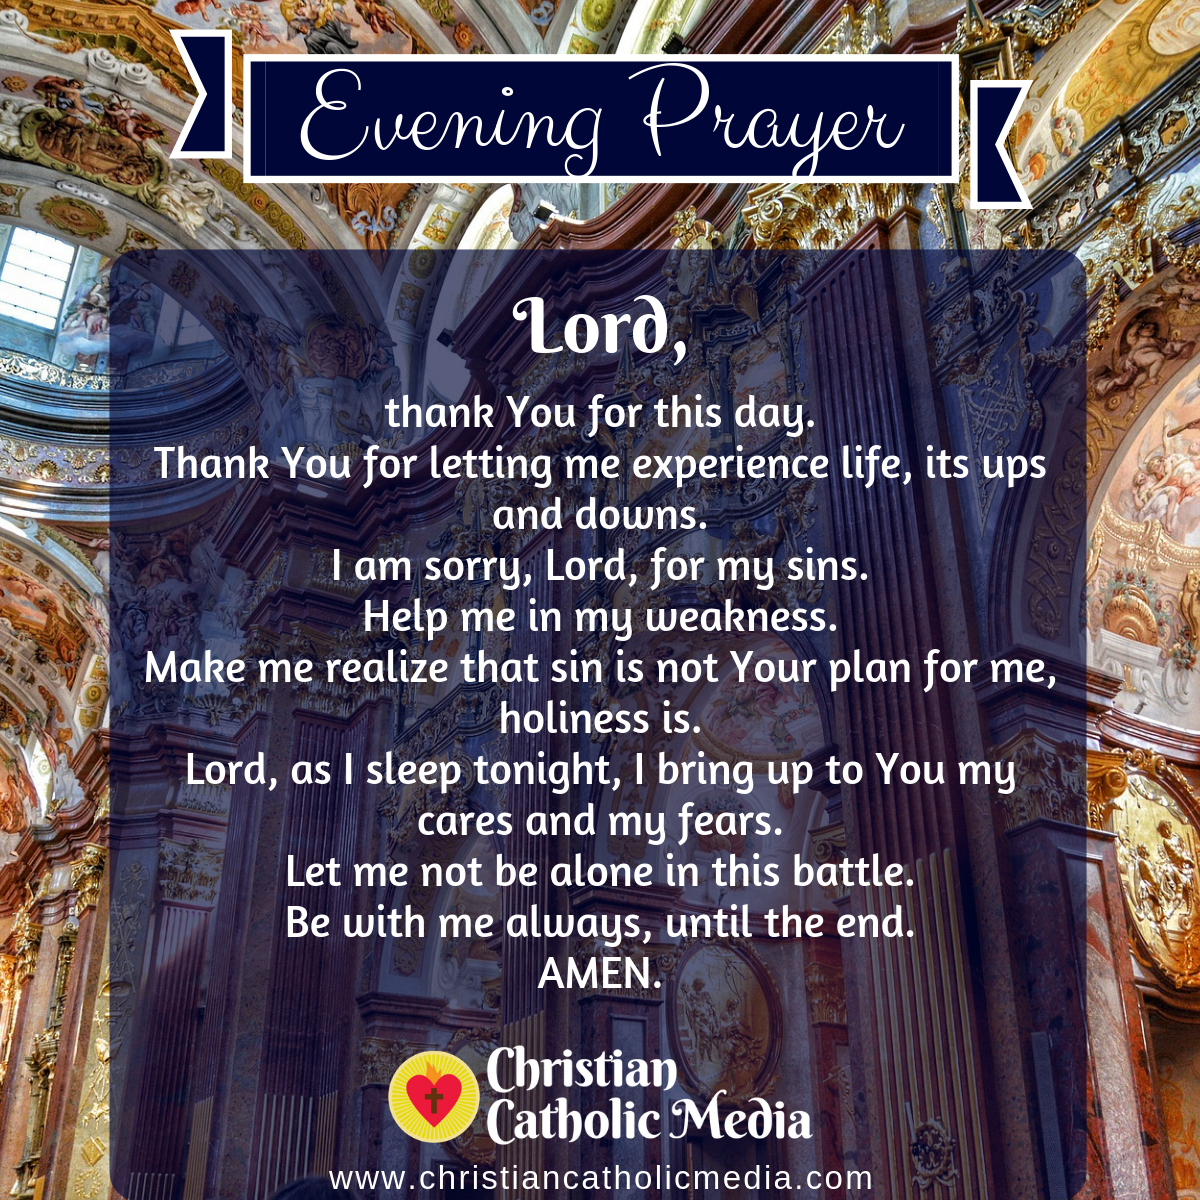 Evening Prayer Catholic Wednesday 2-12-2020